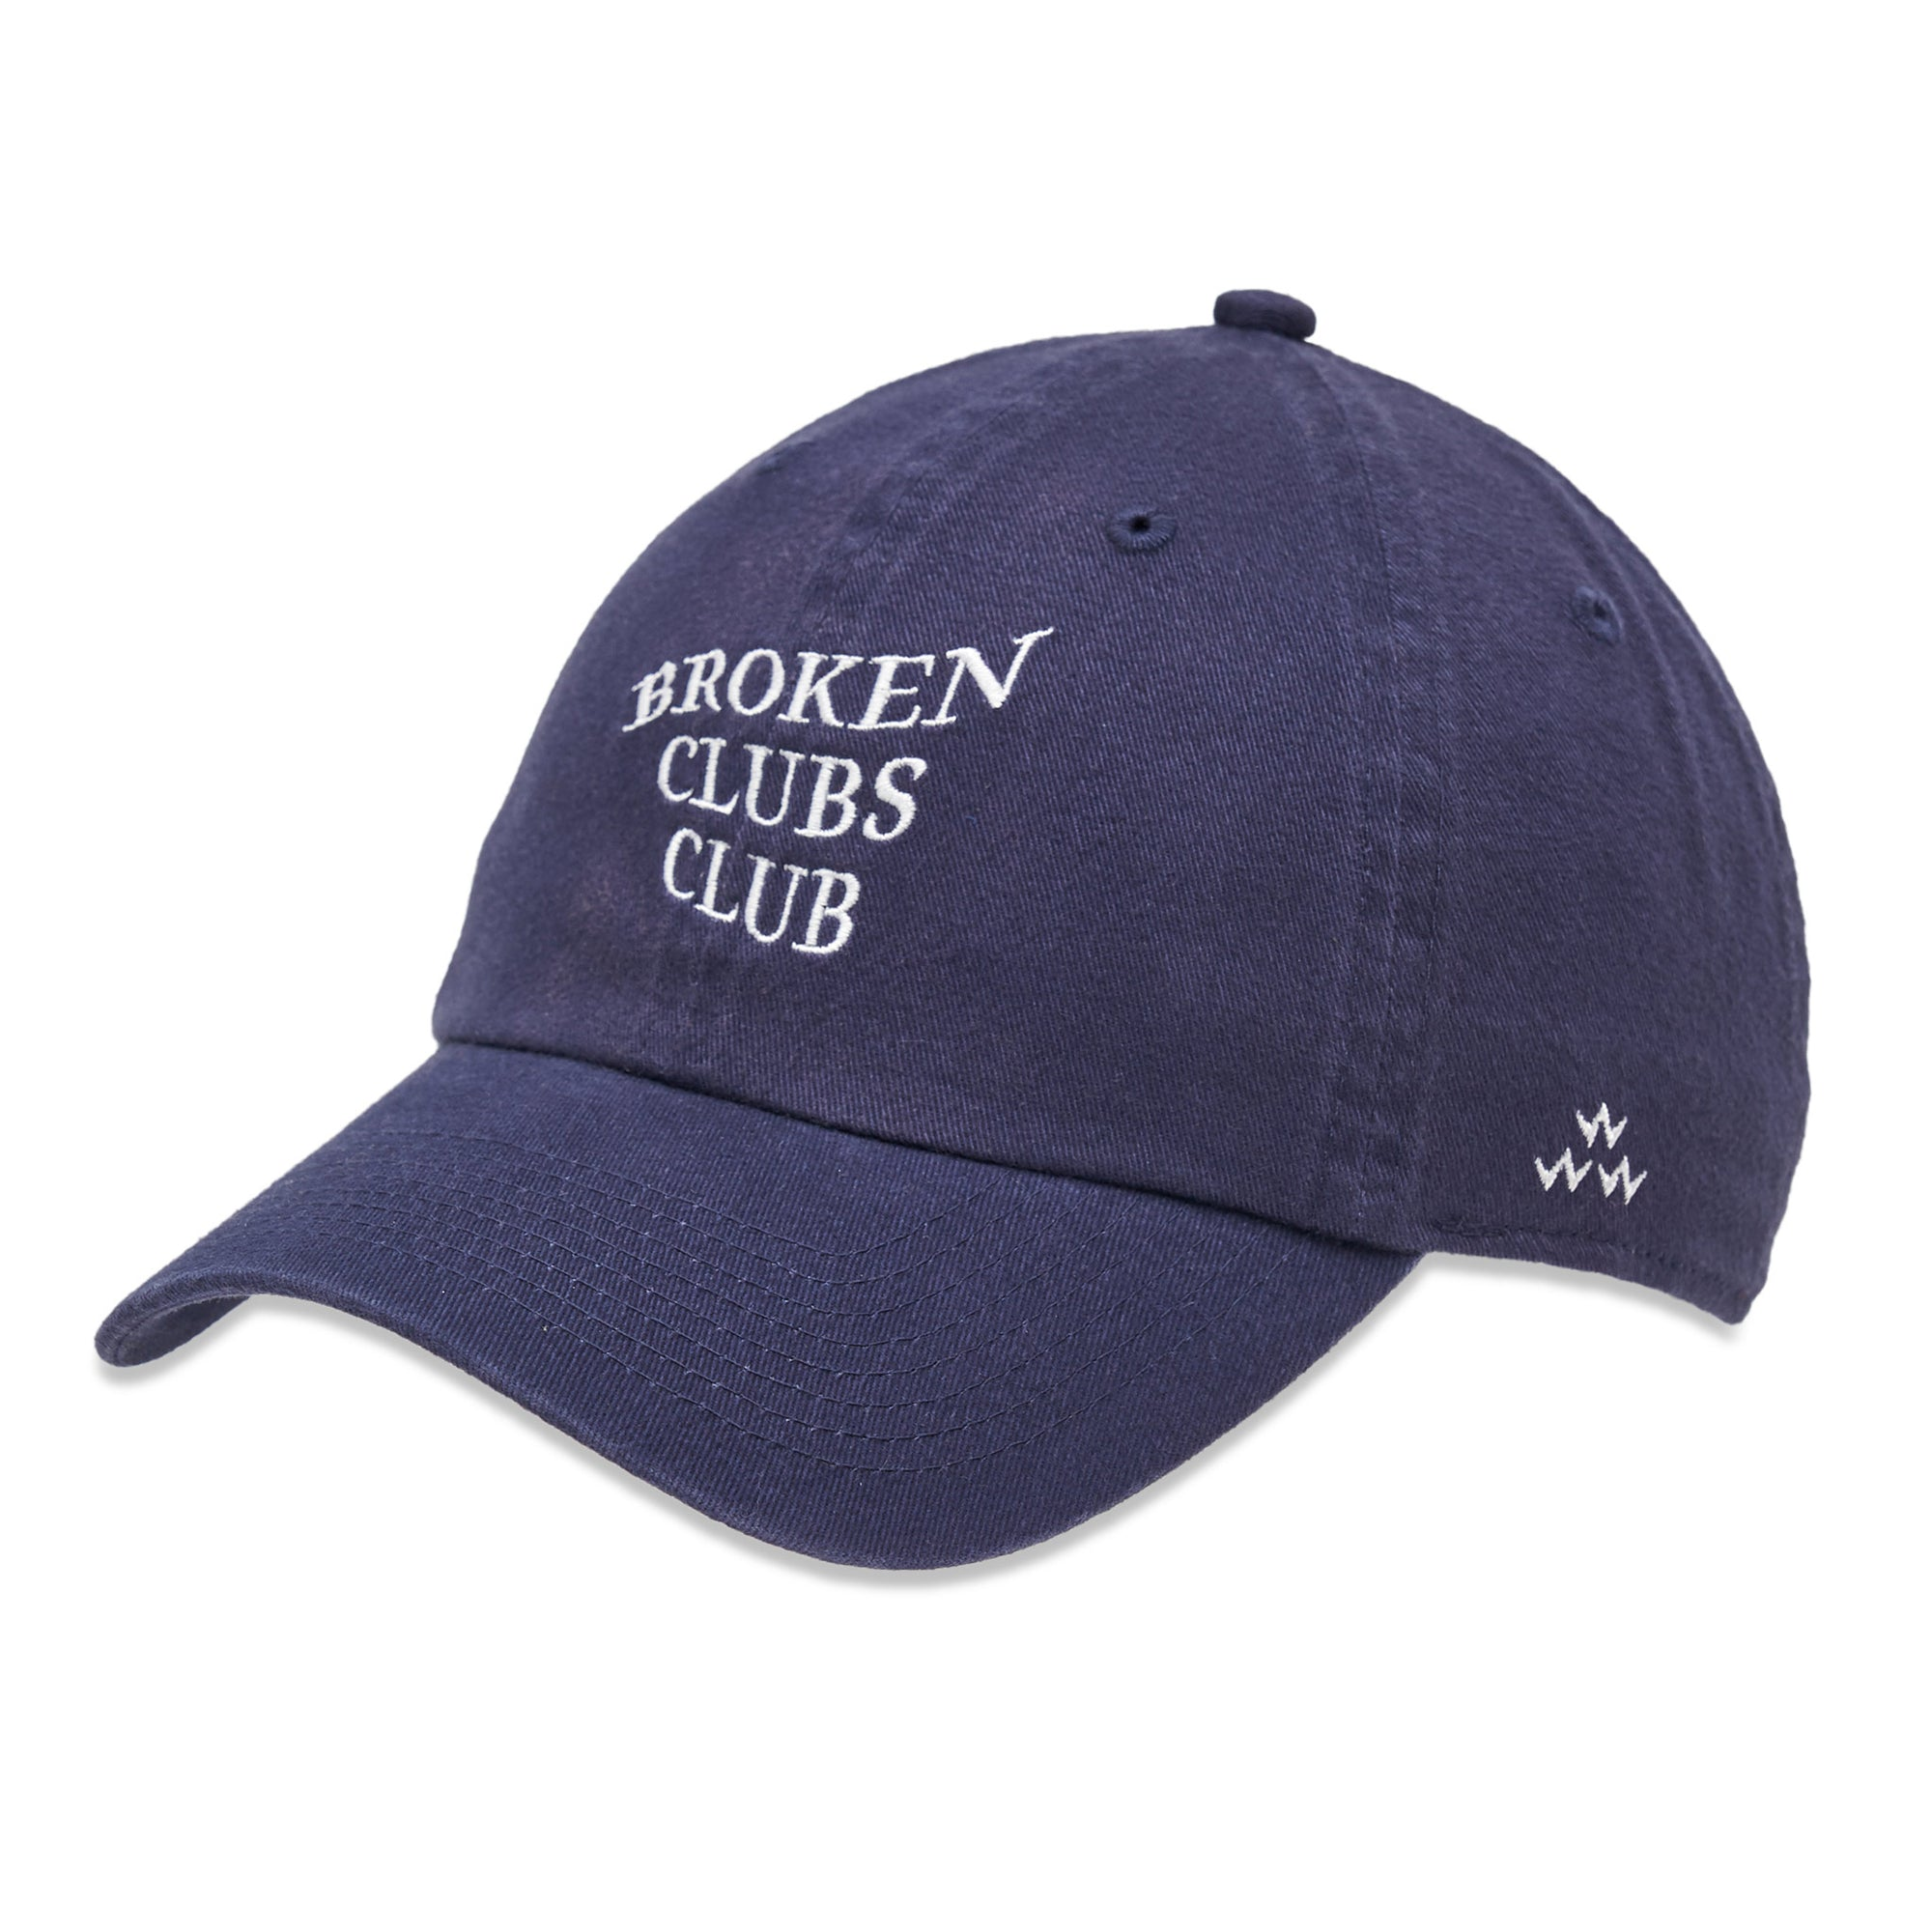 birds-of-condor-blue-golf-broken-clubs-club-dad-cap-hat-front